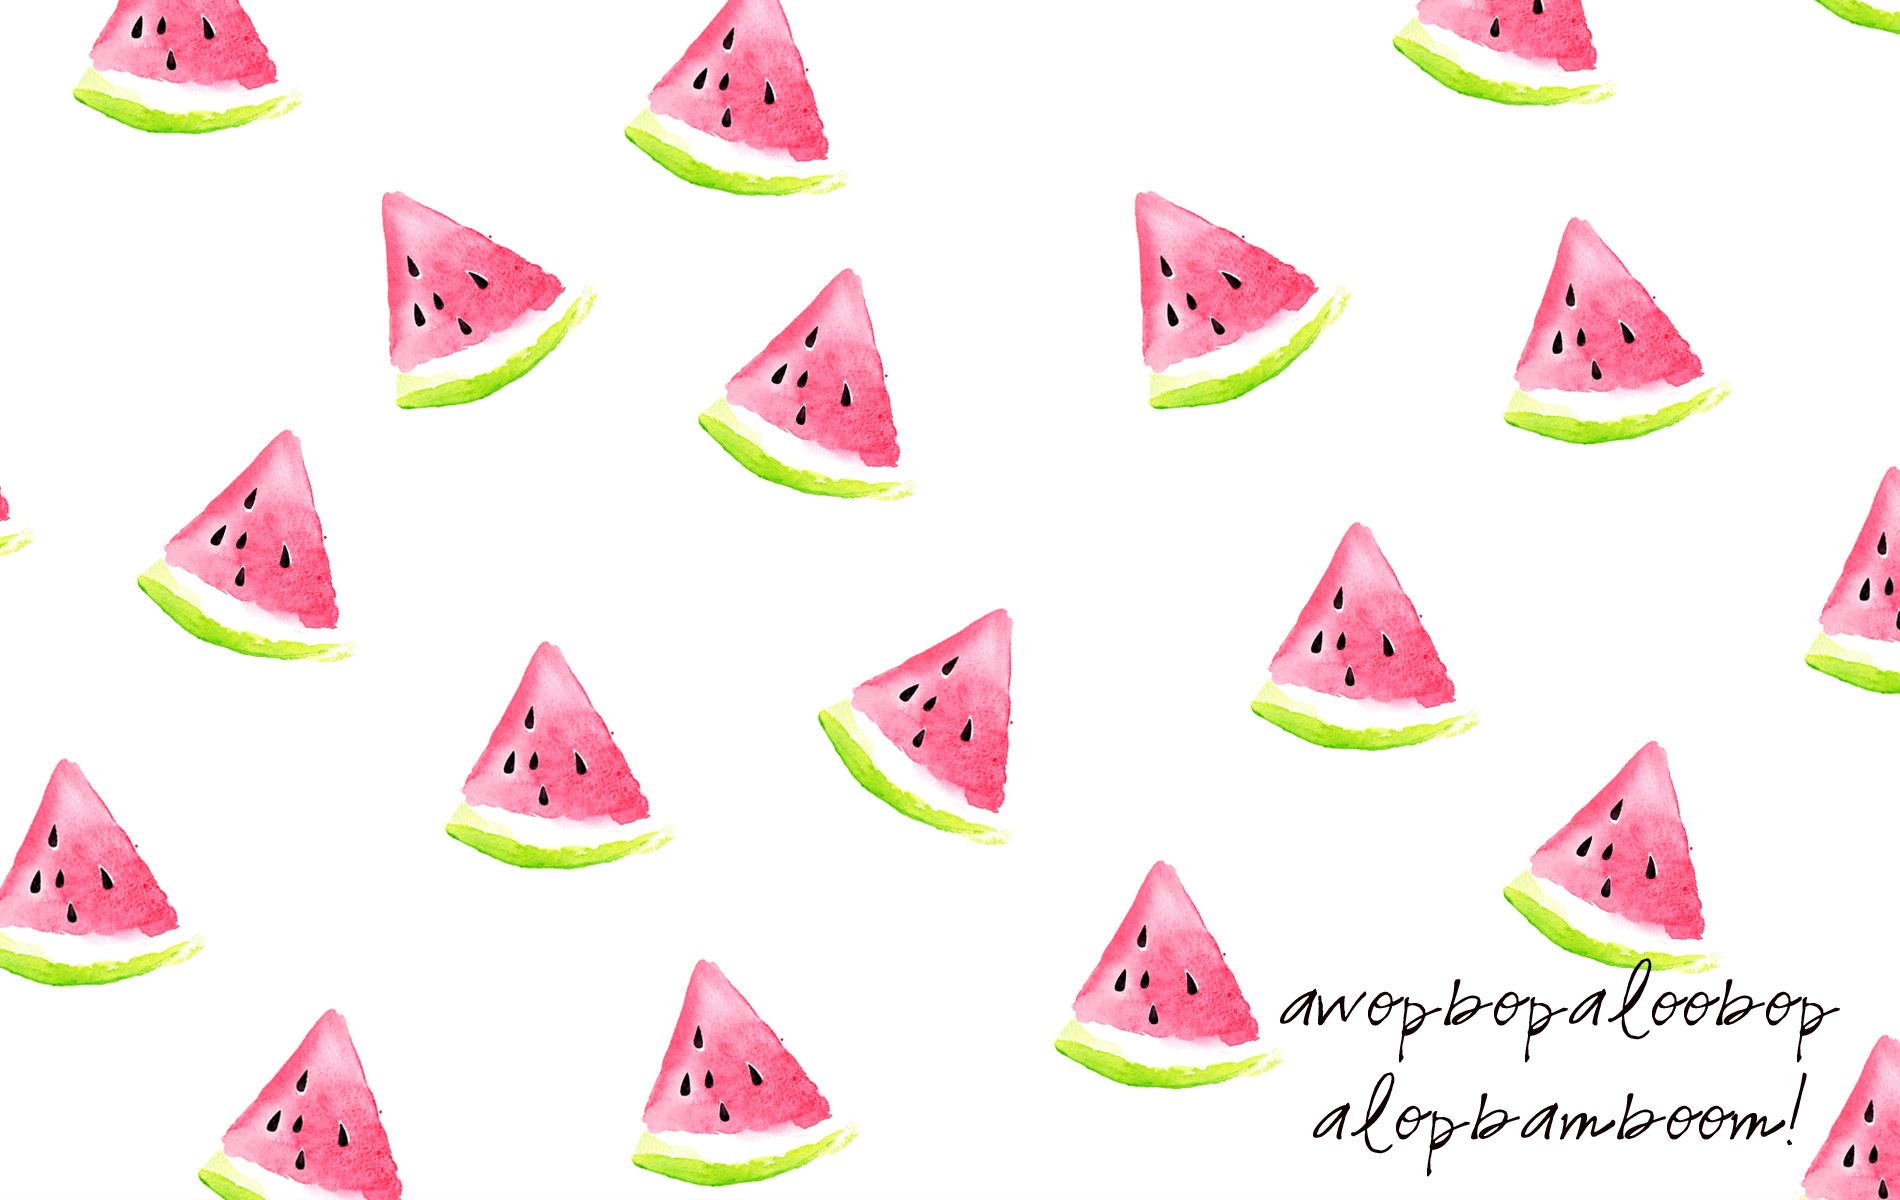 Watermelon wallpapers for your iphone/ipad/desktop